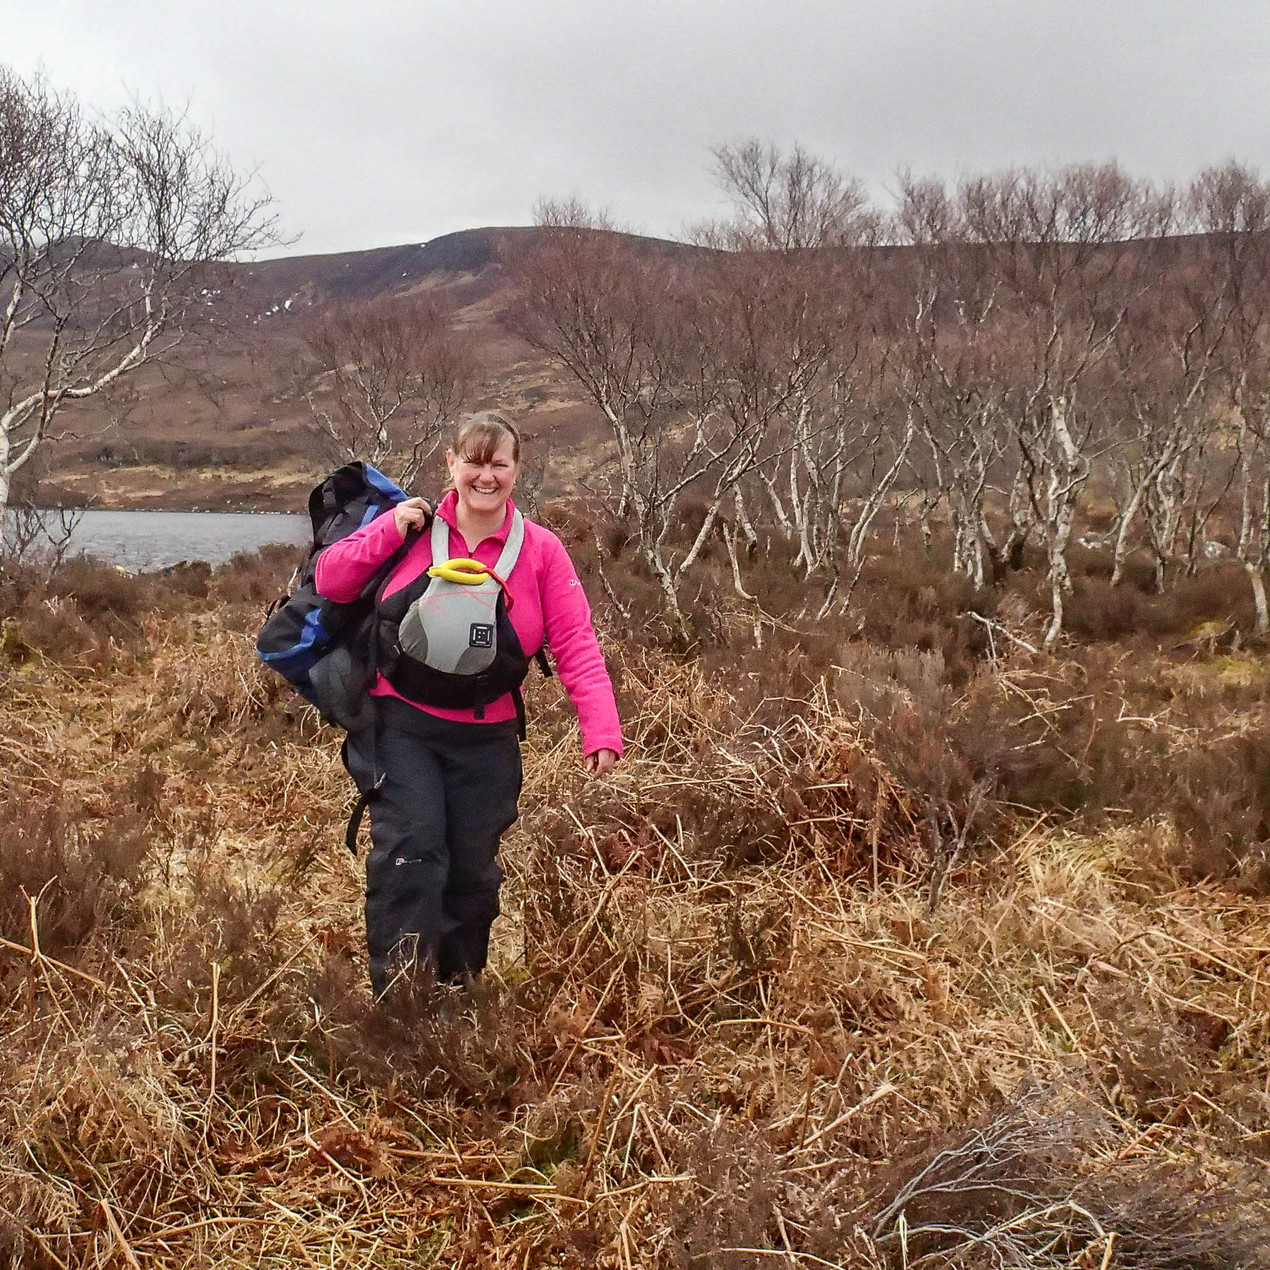 Lynne on the second portage